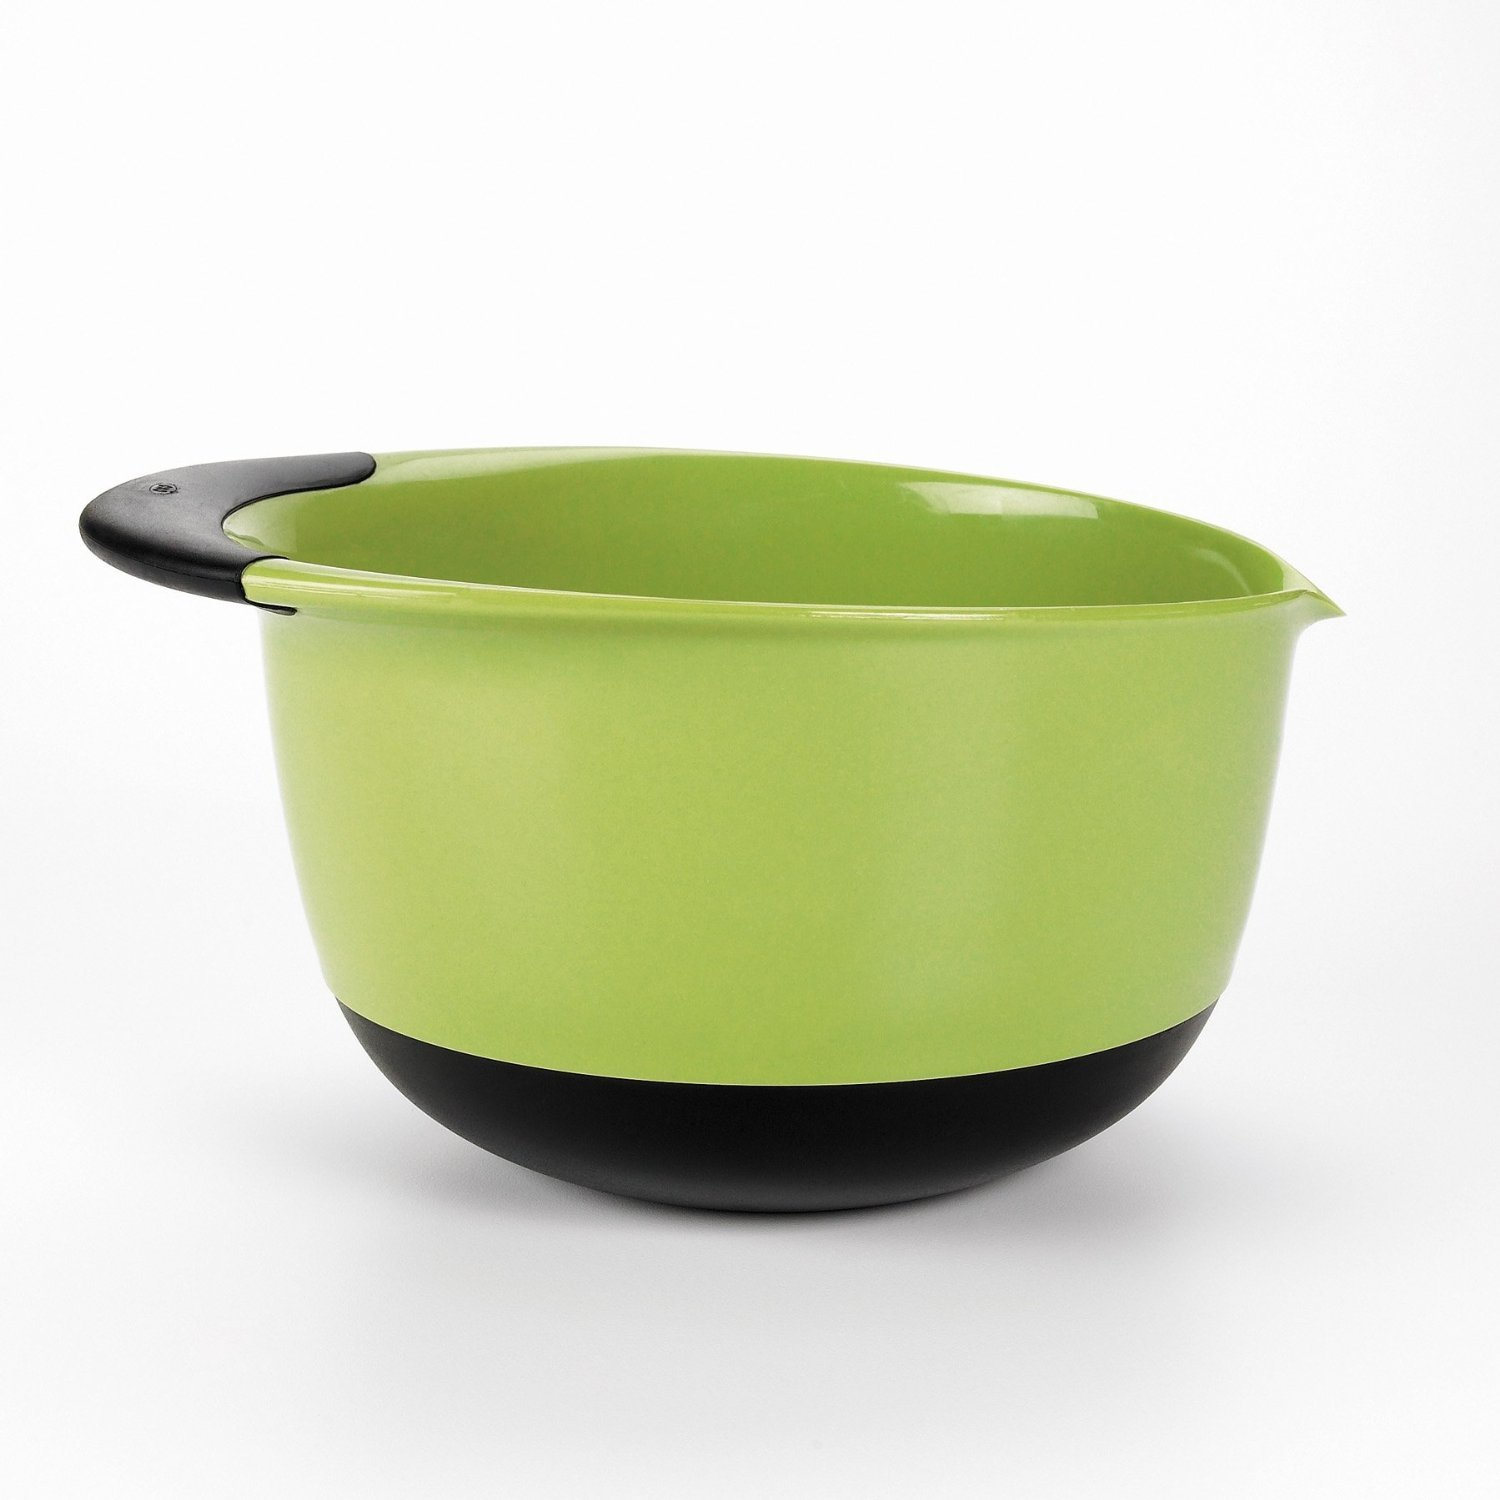 OXO Good Grips 3-Piece Mixing Bowl Set, Blue/Green/Yellow by OXO (Image #3)